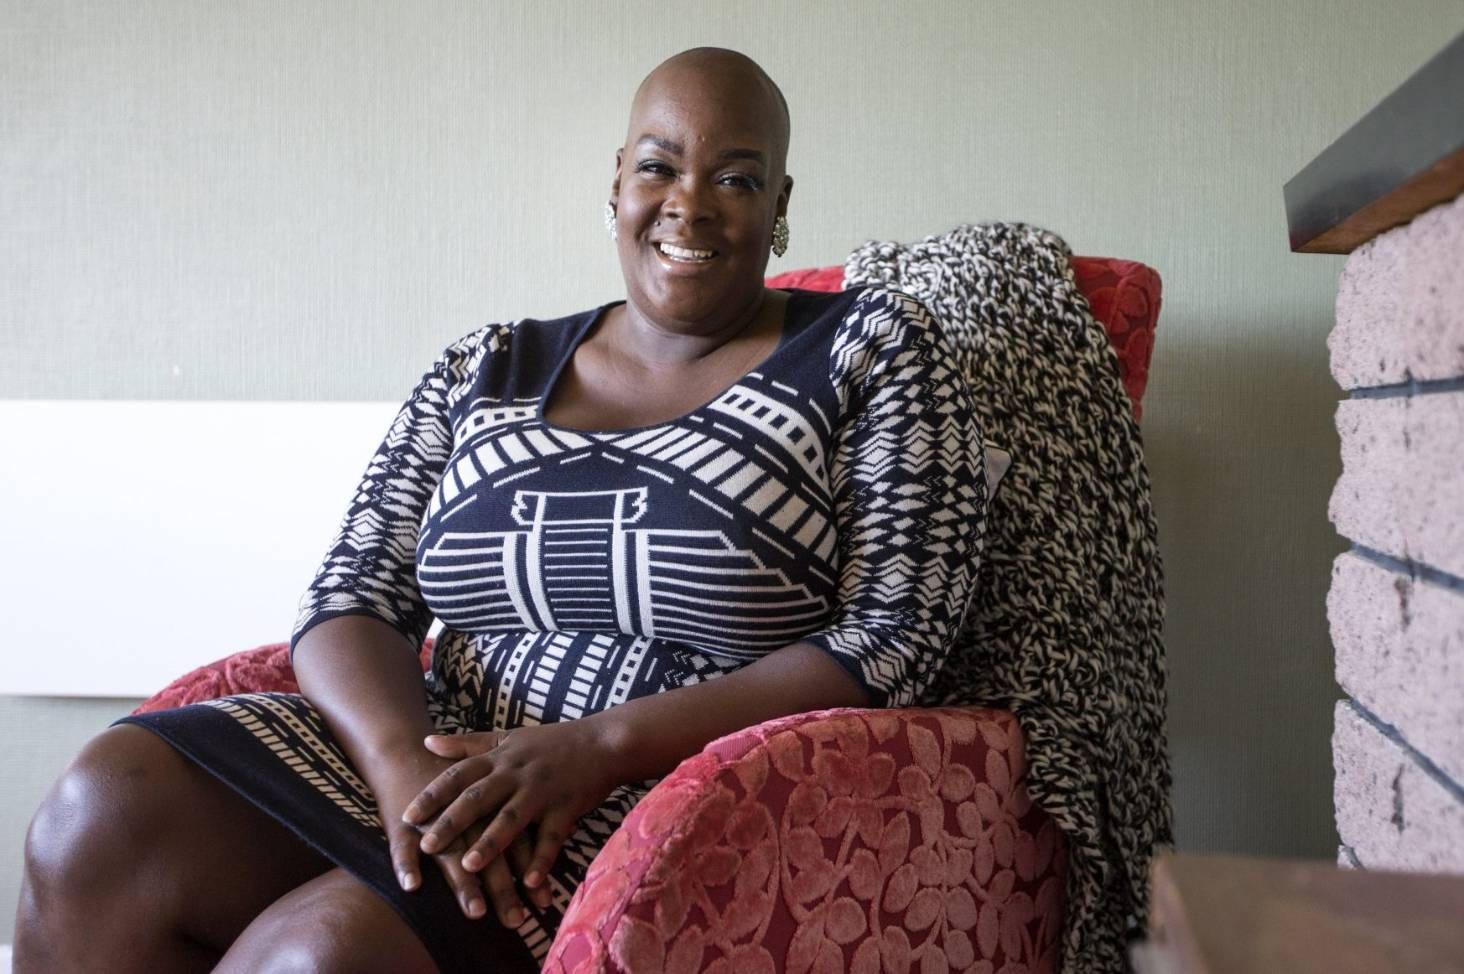 Sonya Renee Taylor - credit to  https://www.stuff.co.nz/life-style/well-good/inspire-me/105025383/fat-black-queer-poet-on-a-mission-to-free-us-from-oppressive-beauty-norms